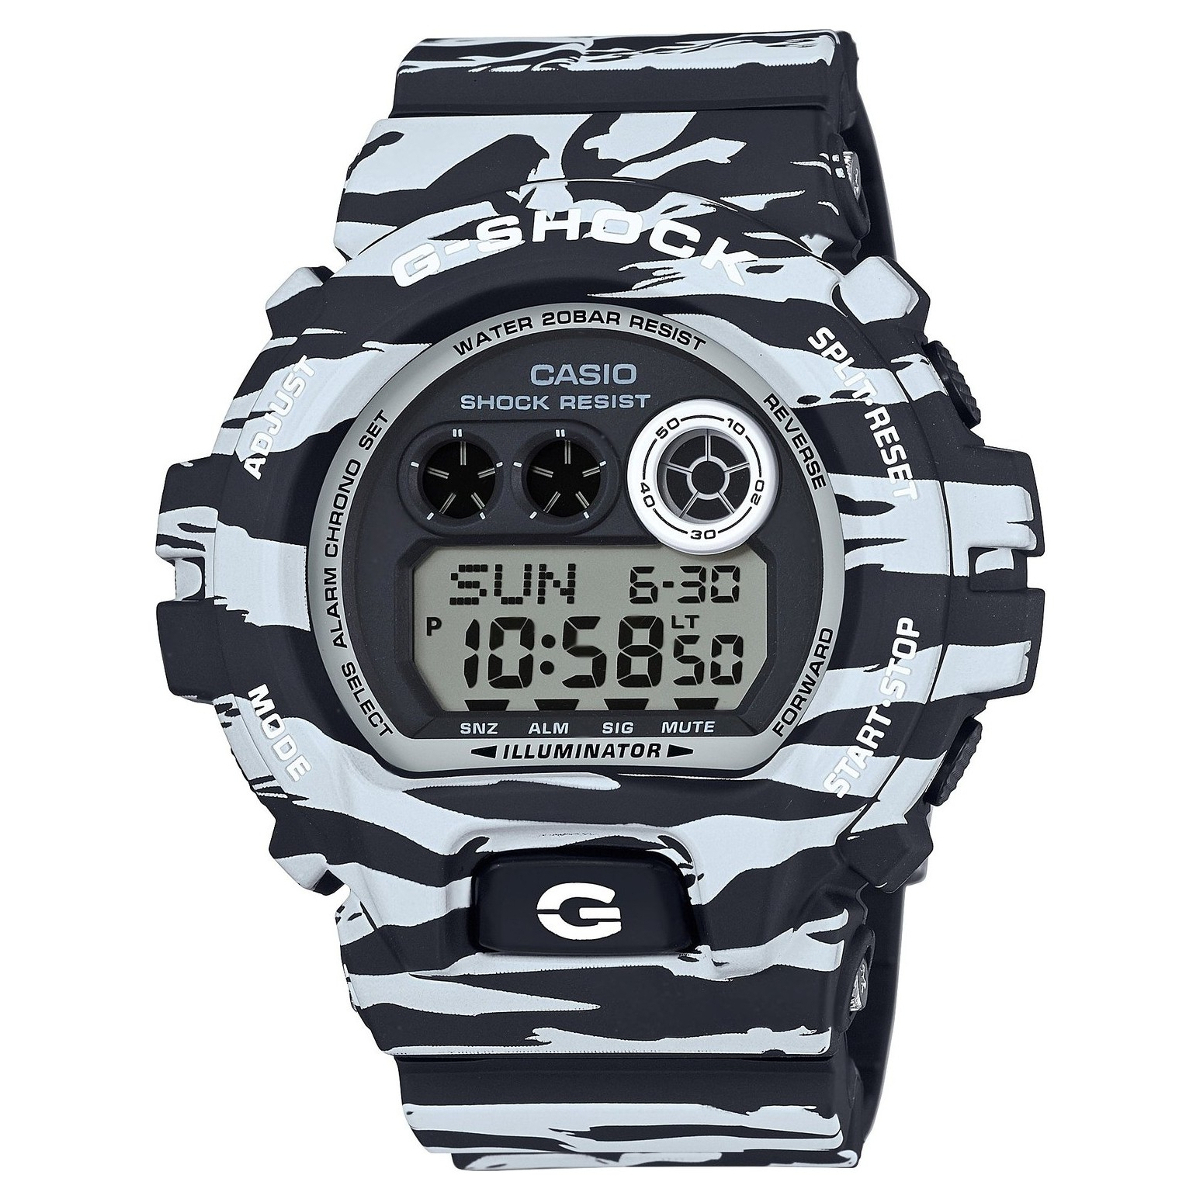 Casio G-shock GD-X6900BW-1E double zipper canvas backpack